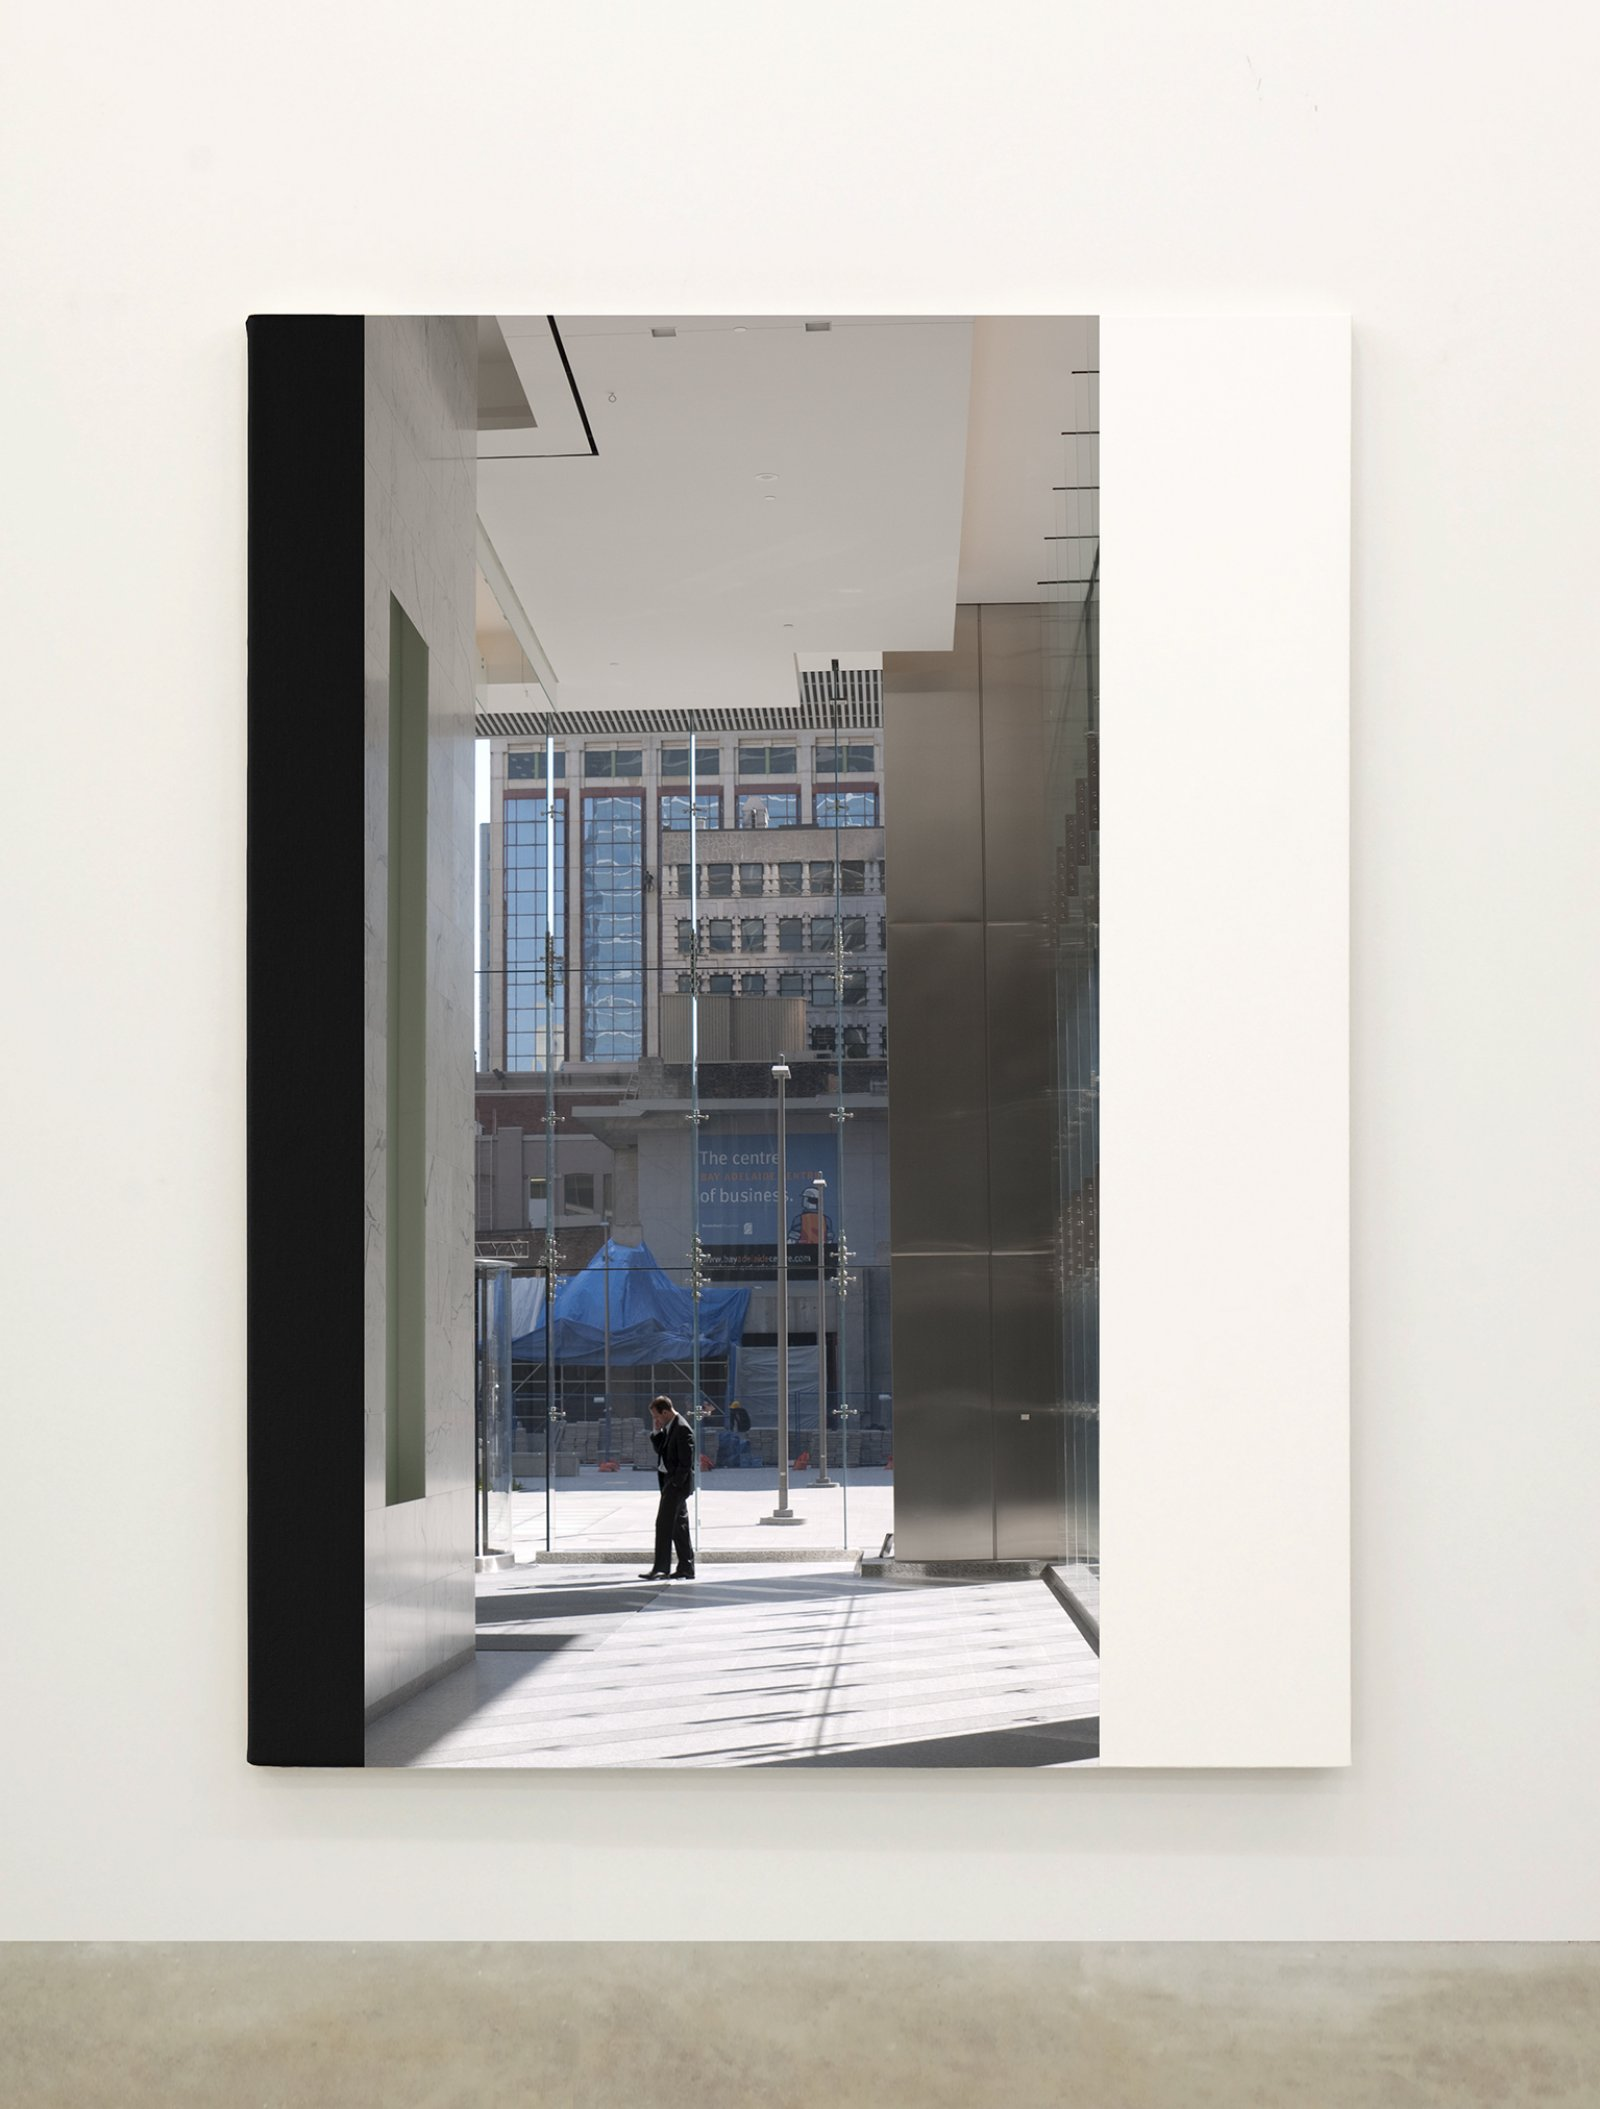 Ian Wallace,Abstract Painting VIII(The Financial District), 2010,12 photolaminate with acrylic on canvas panels, each 96 x 72 in. (244 x 183 cm)